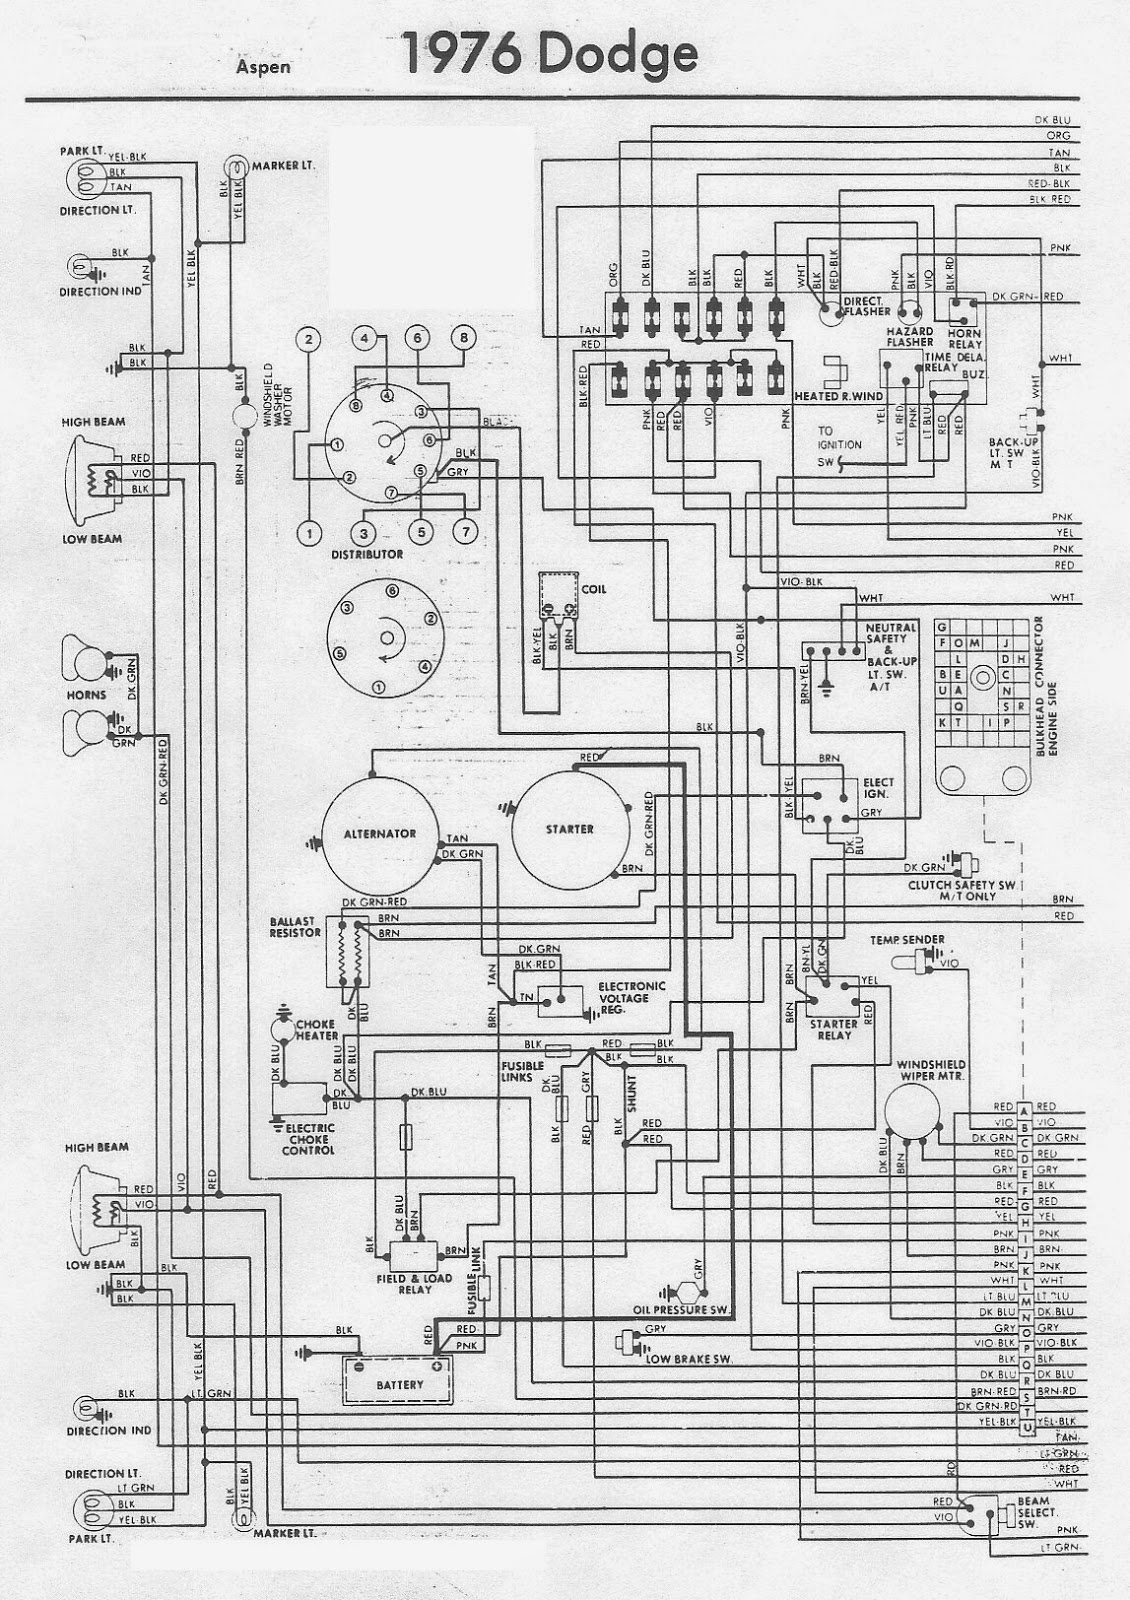 1978 dodge d150 wiring diagram schematic diagram1978 dodge truck wiring diagrams data wiring diagram today 1990 [ 1130 x 1600 Pixel ]